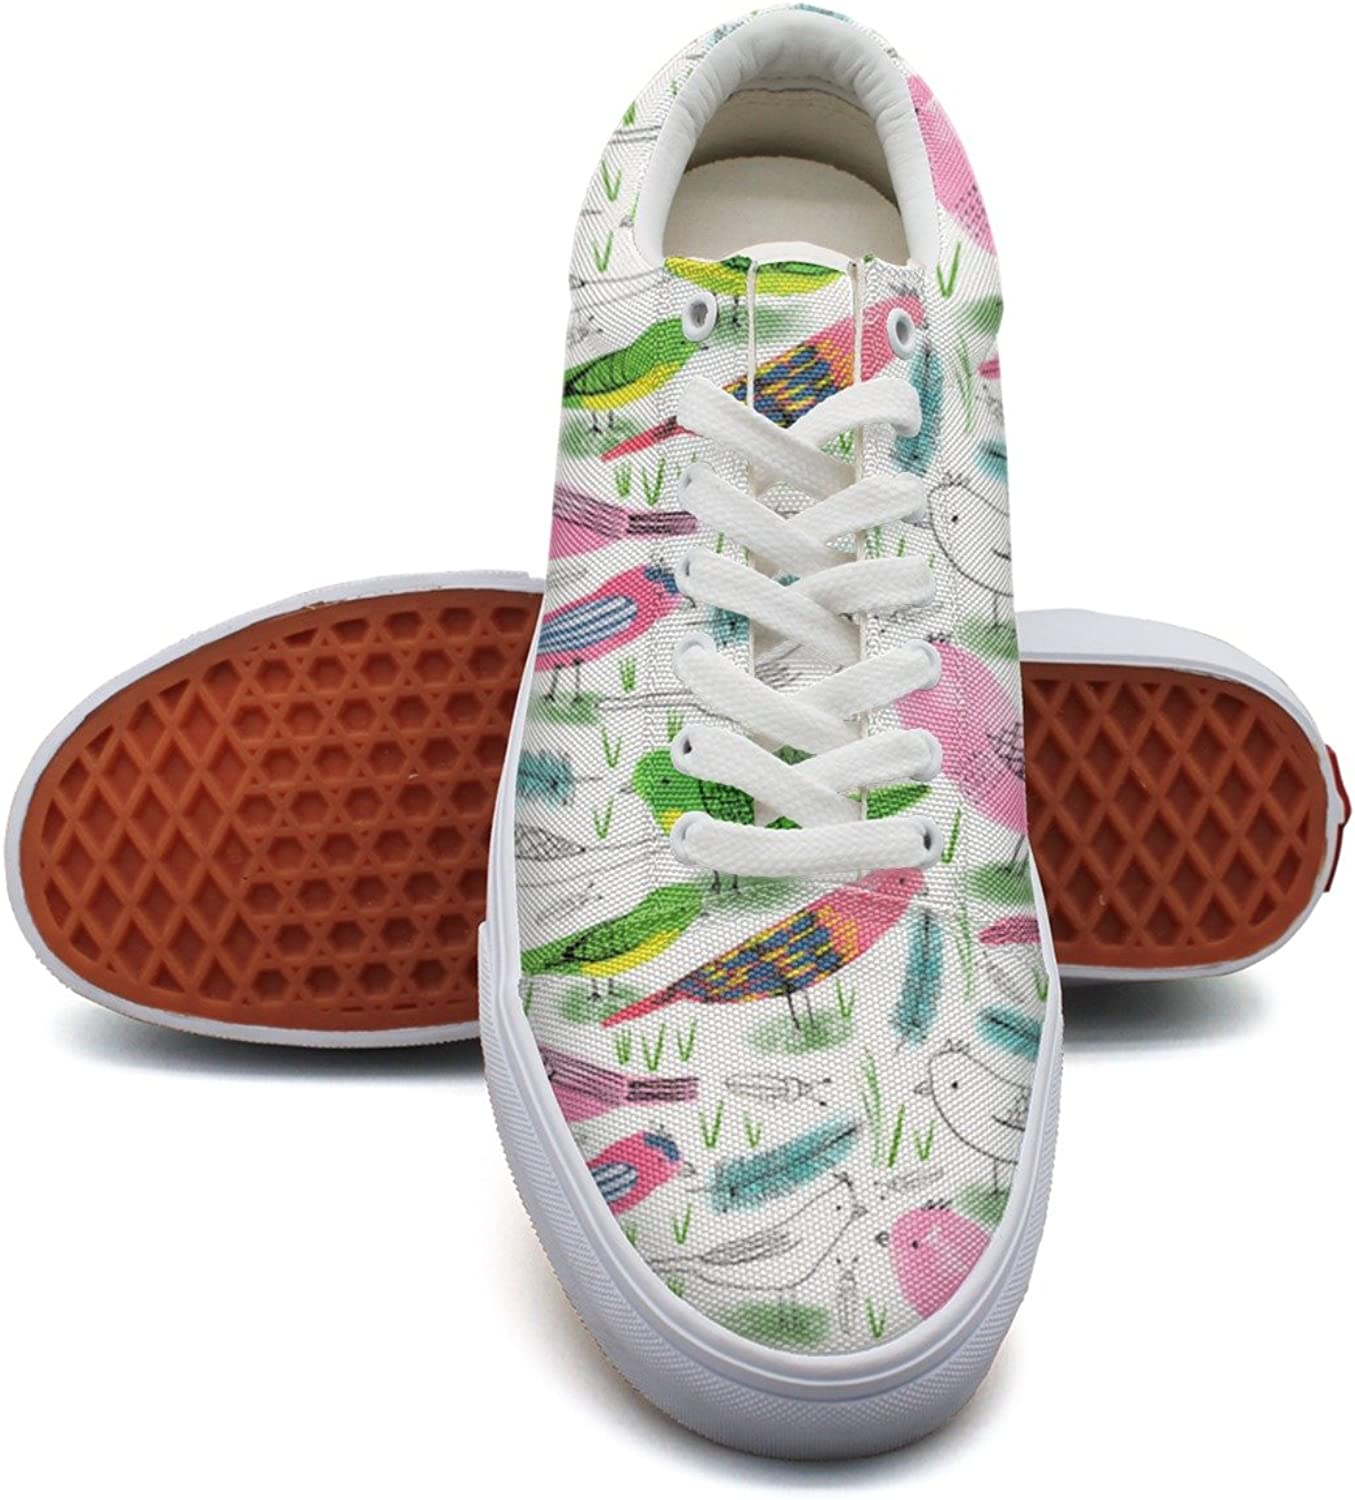 Hjkggd fgfds Casual Watercolor Gren Abd Pink Birds Feathers Women Canvas Sneakers shoes